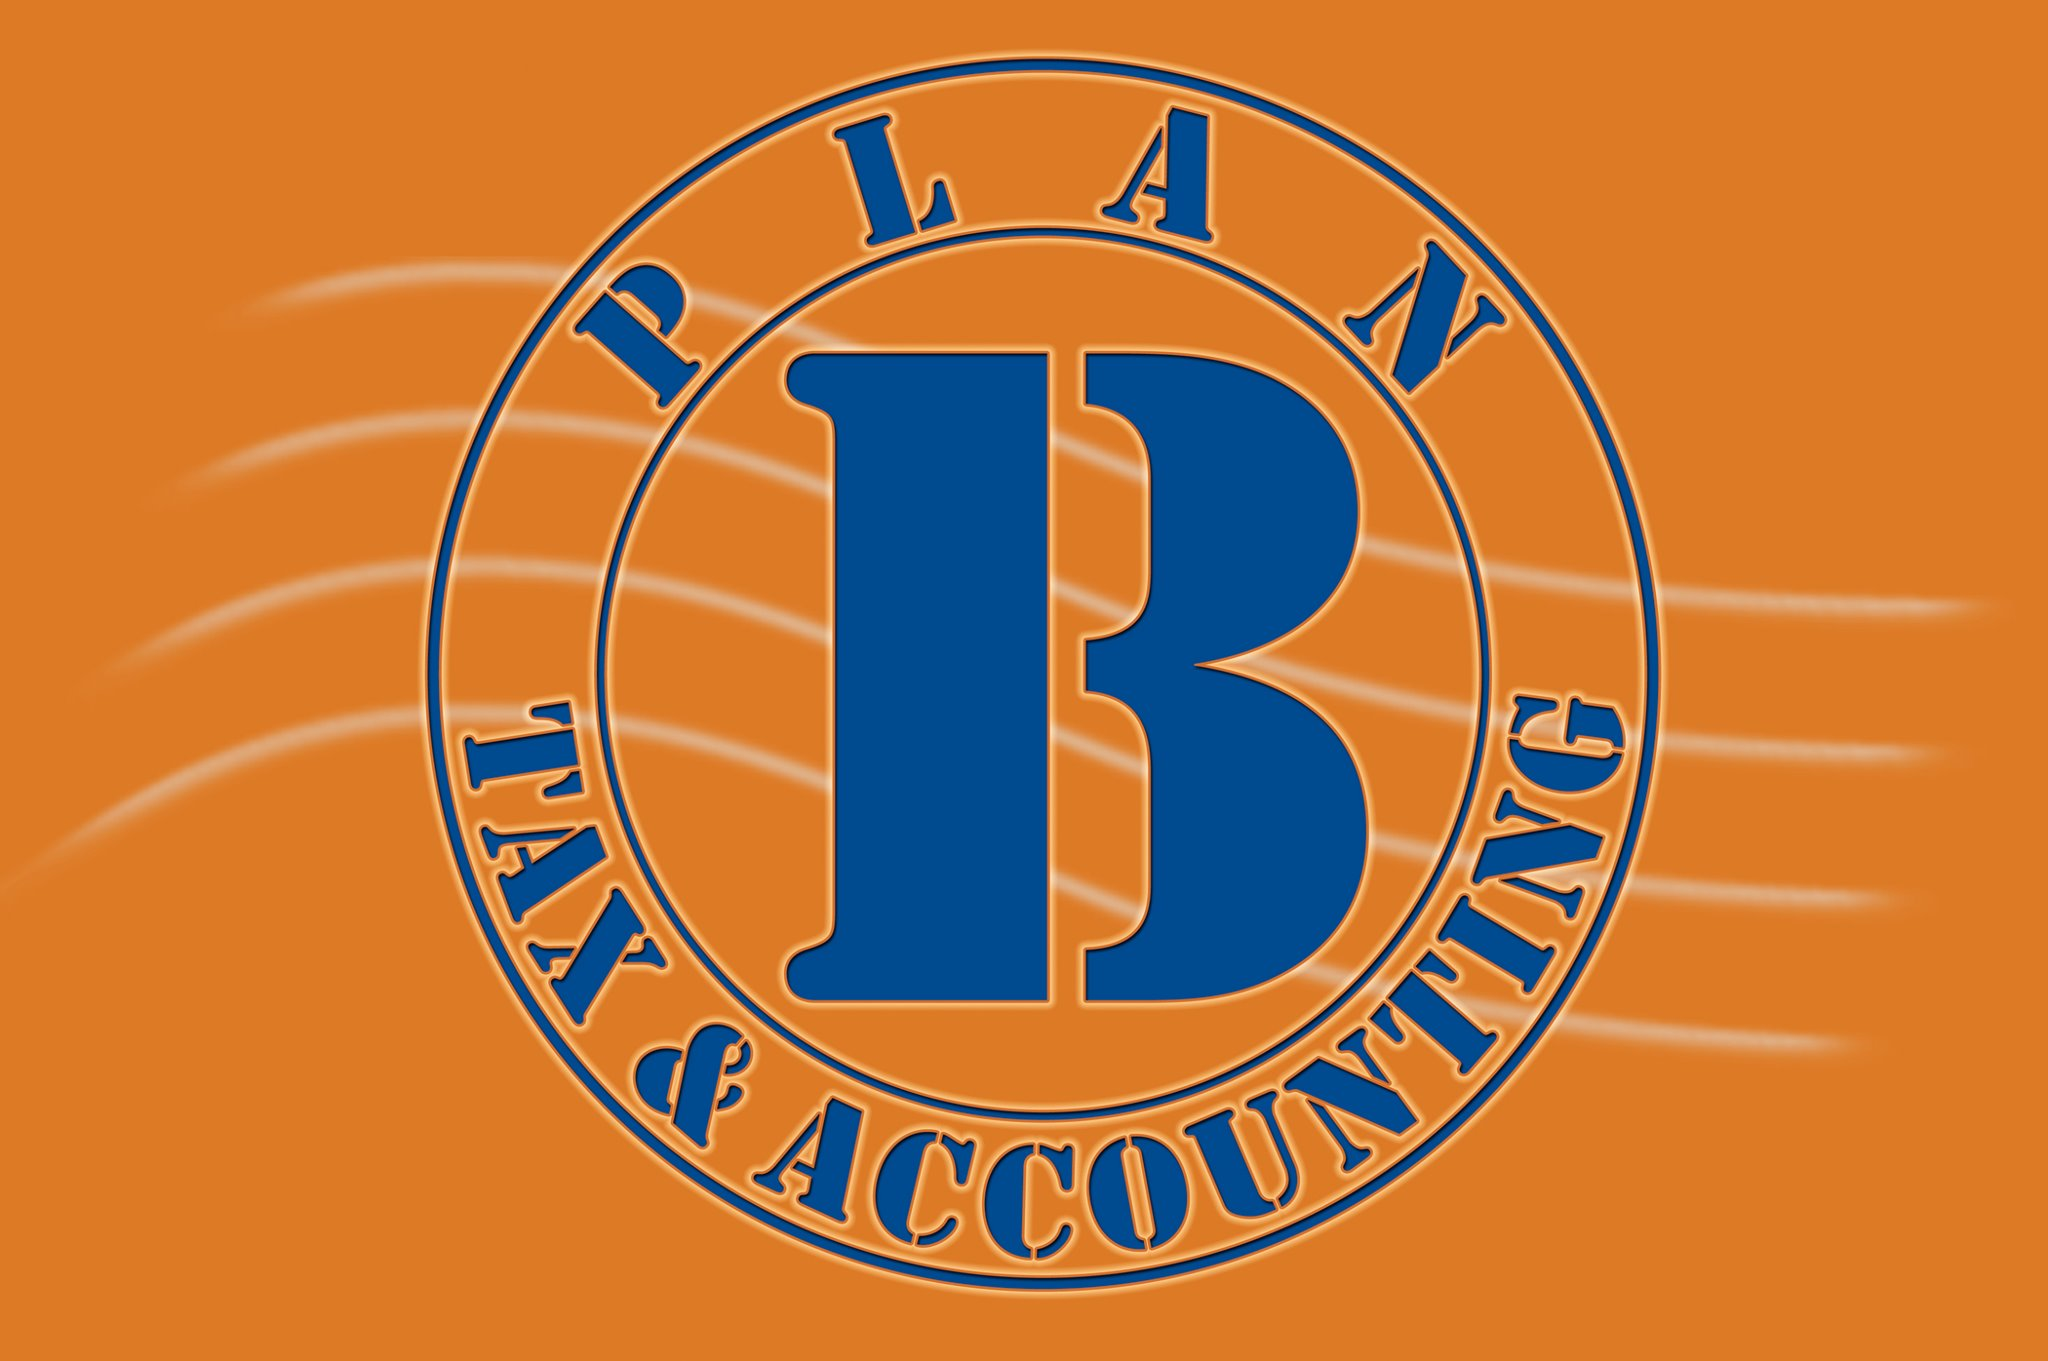 Plan B Tax Relief 31321 Dequindre Rd, Madison Heights, MI 48071 - YP.com